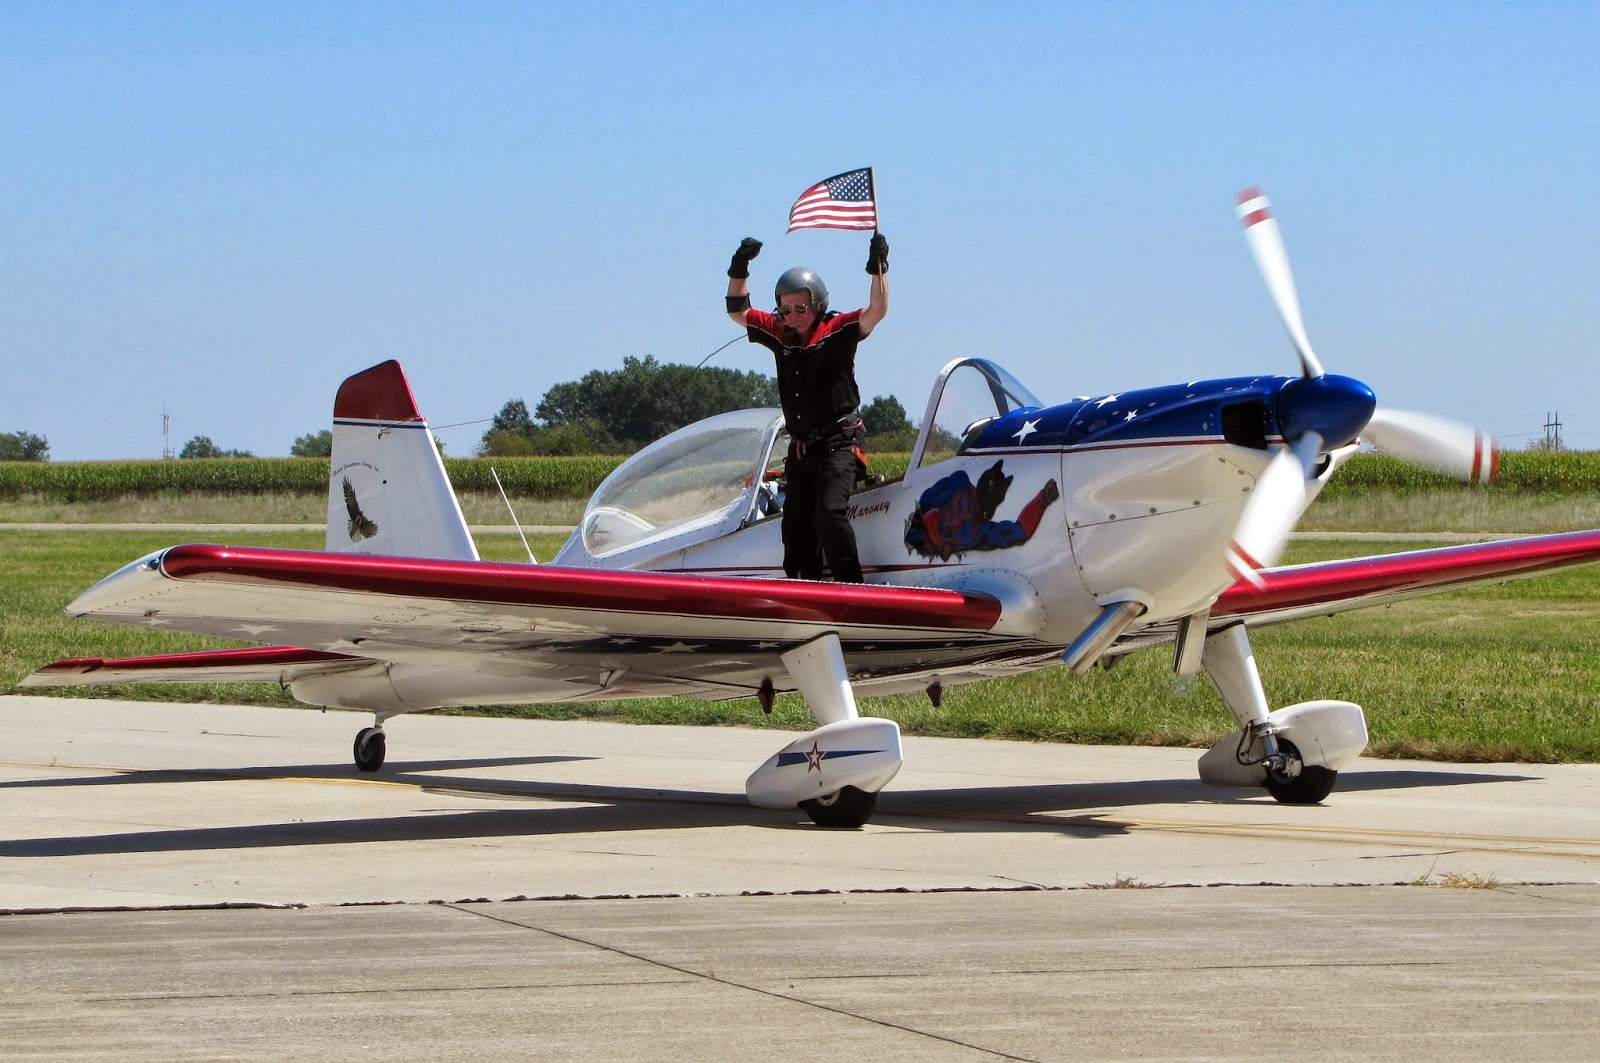 http://aeroexperience.blogspot.com/2014/03/aviation-community-and-airshow-fans.html